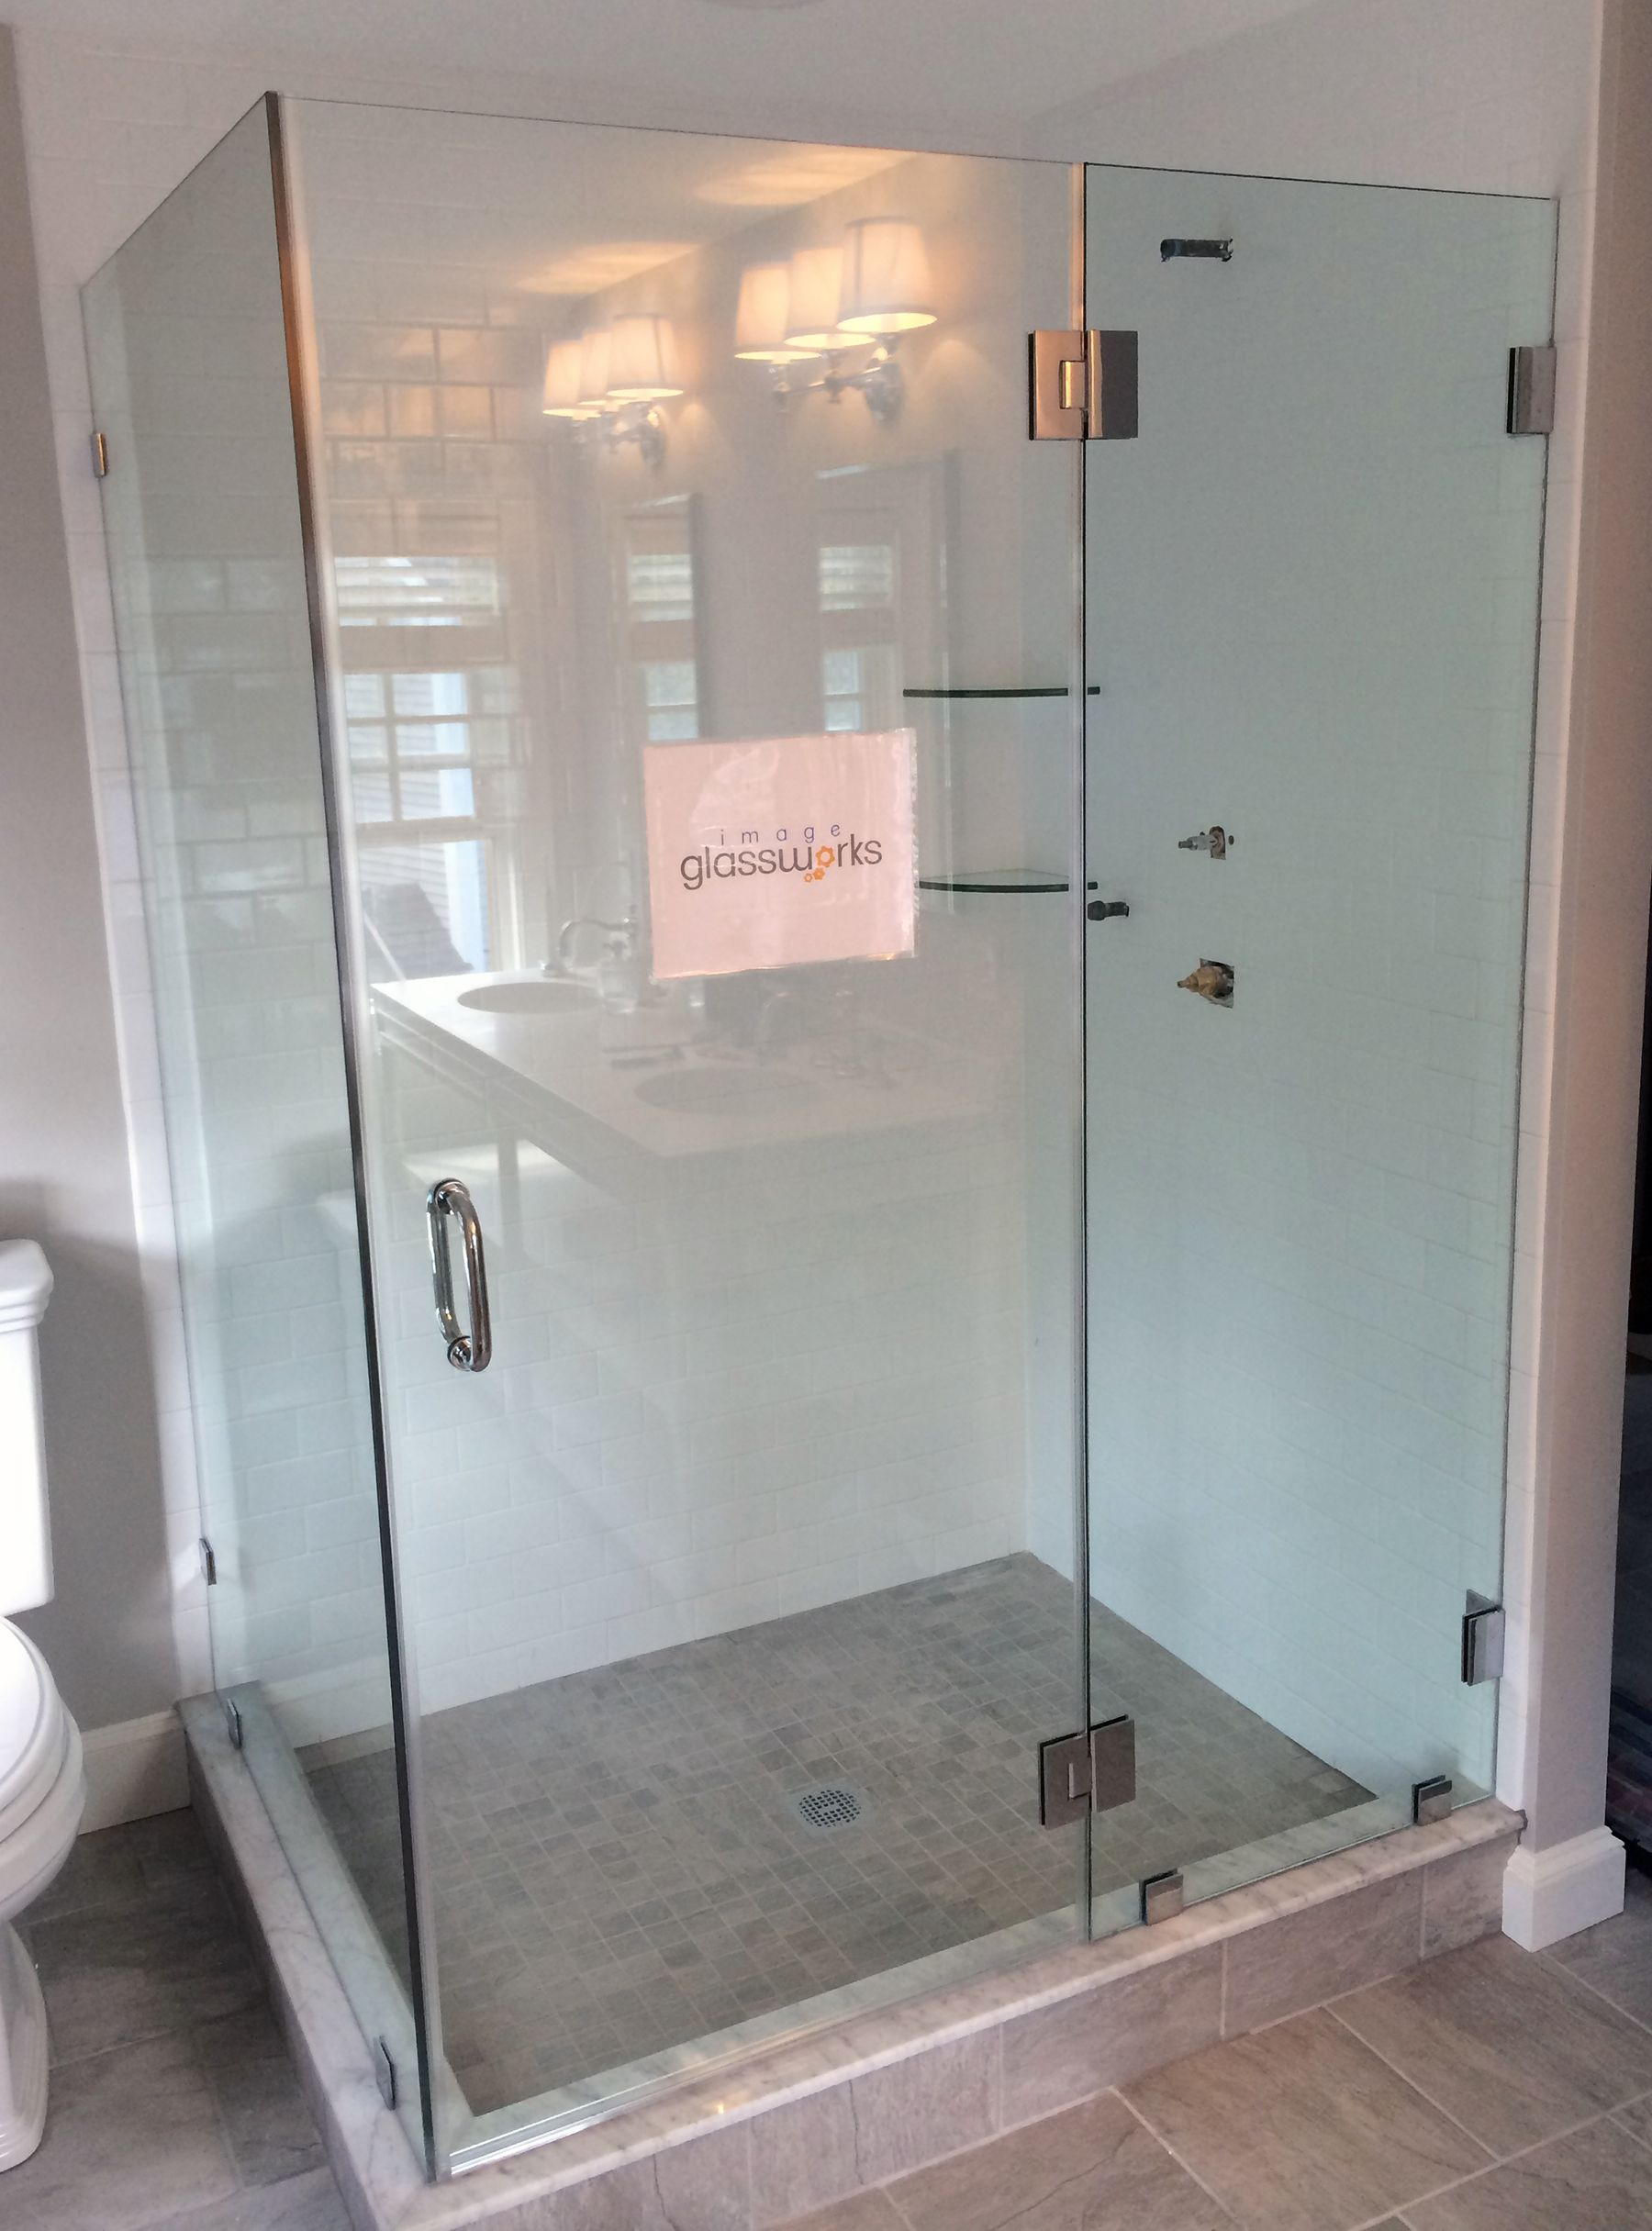 A Frameless Swinging Shower Door Hinged From The Stationary Panel Which Closes Against A Large Return Glass Shower Door Hinge Shower Doors Swinging Shower Door